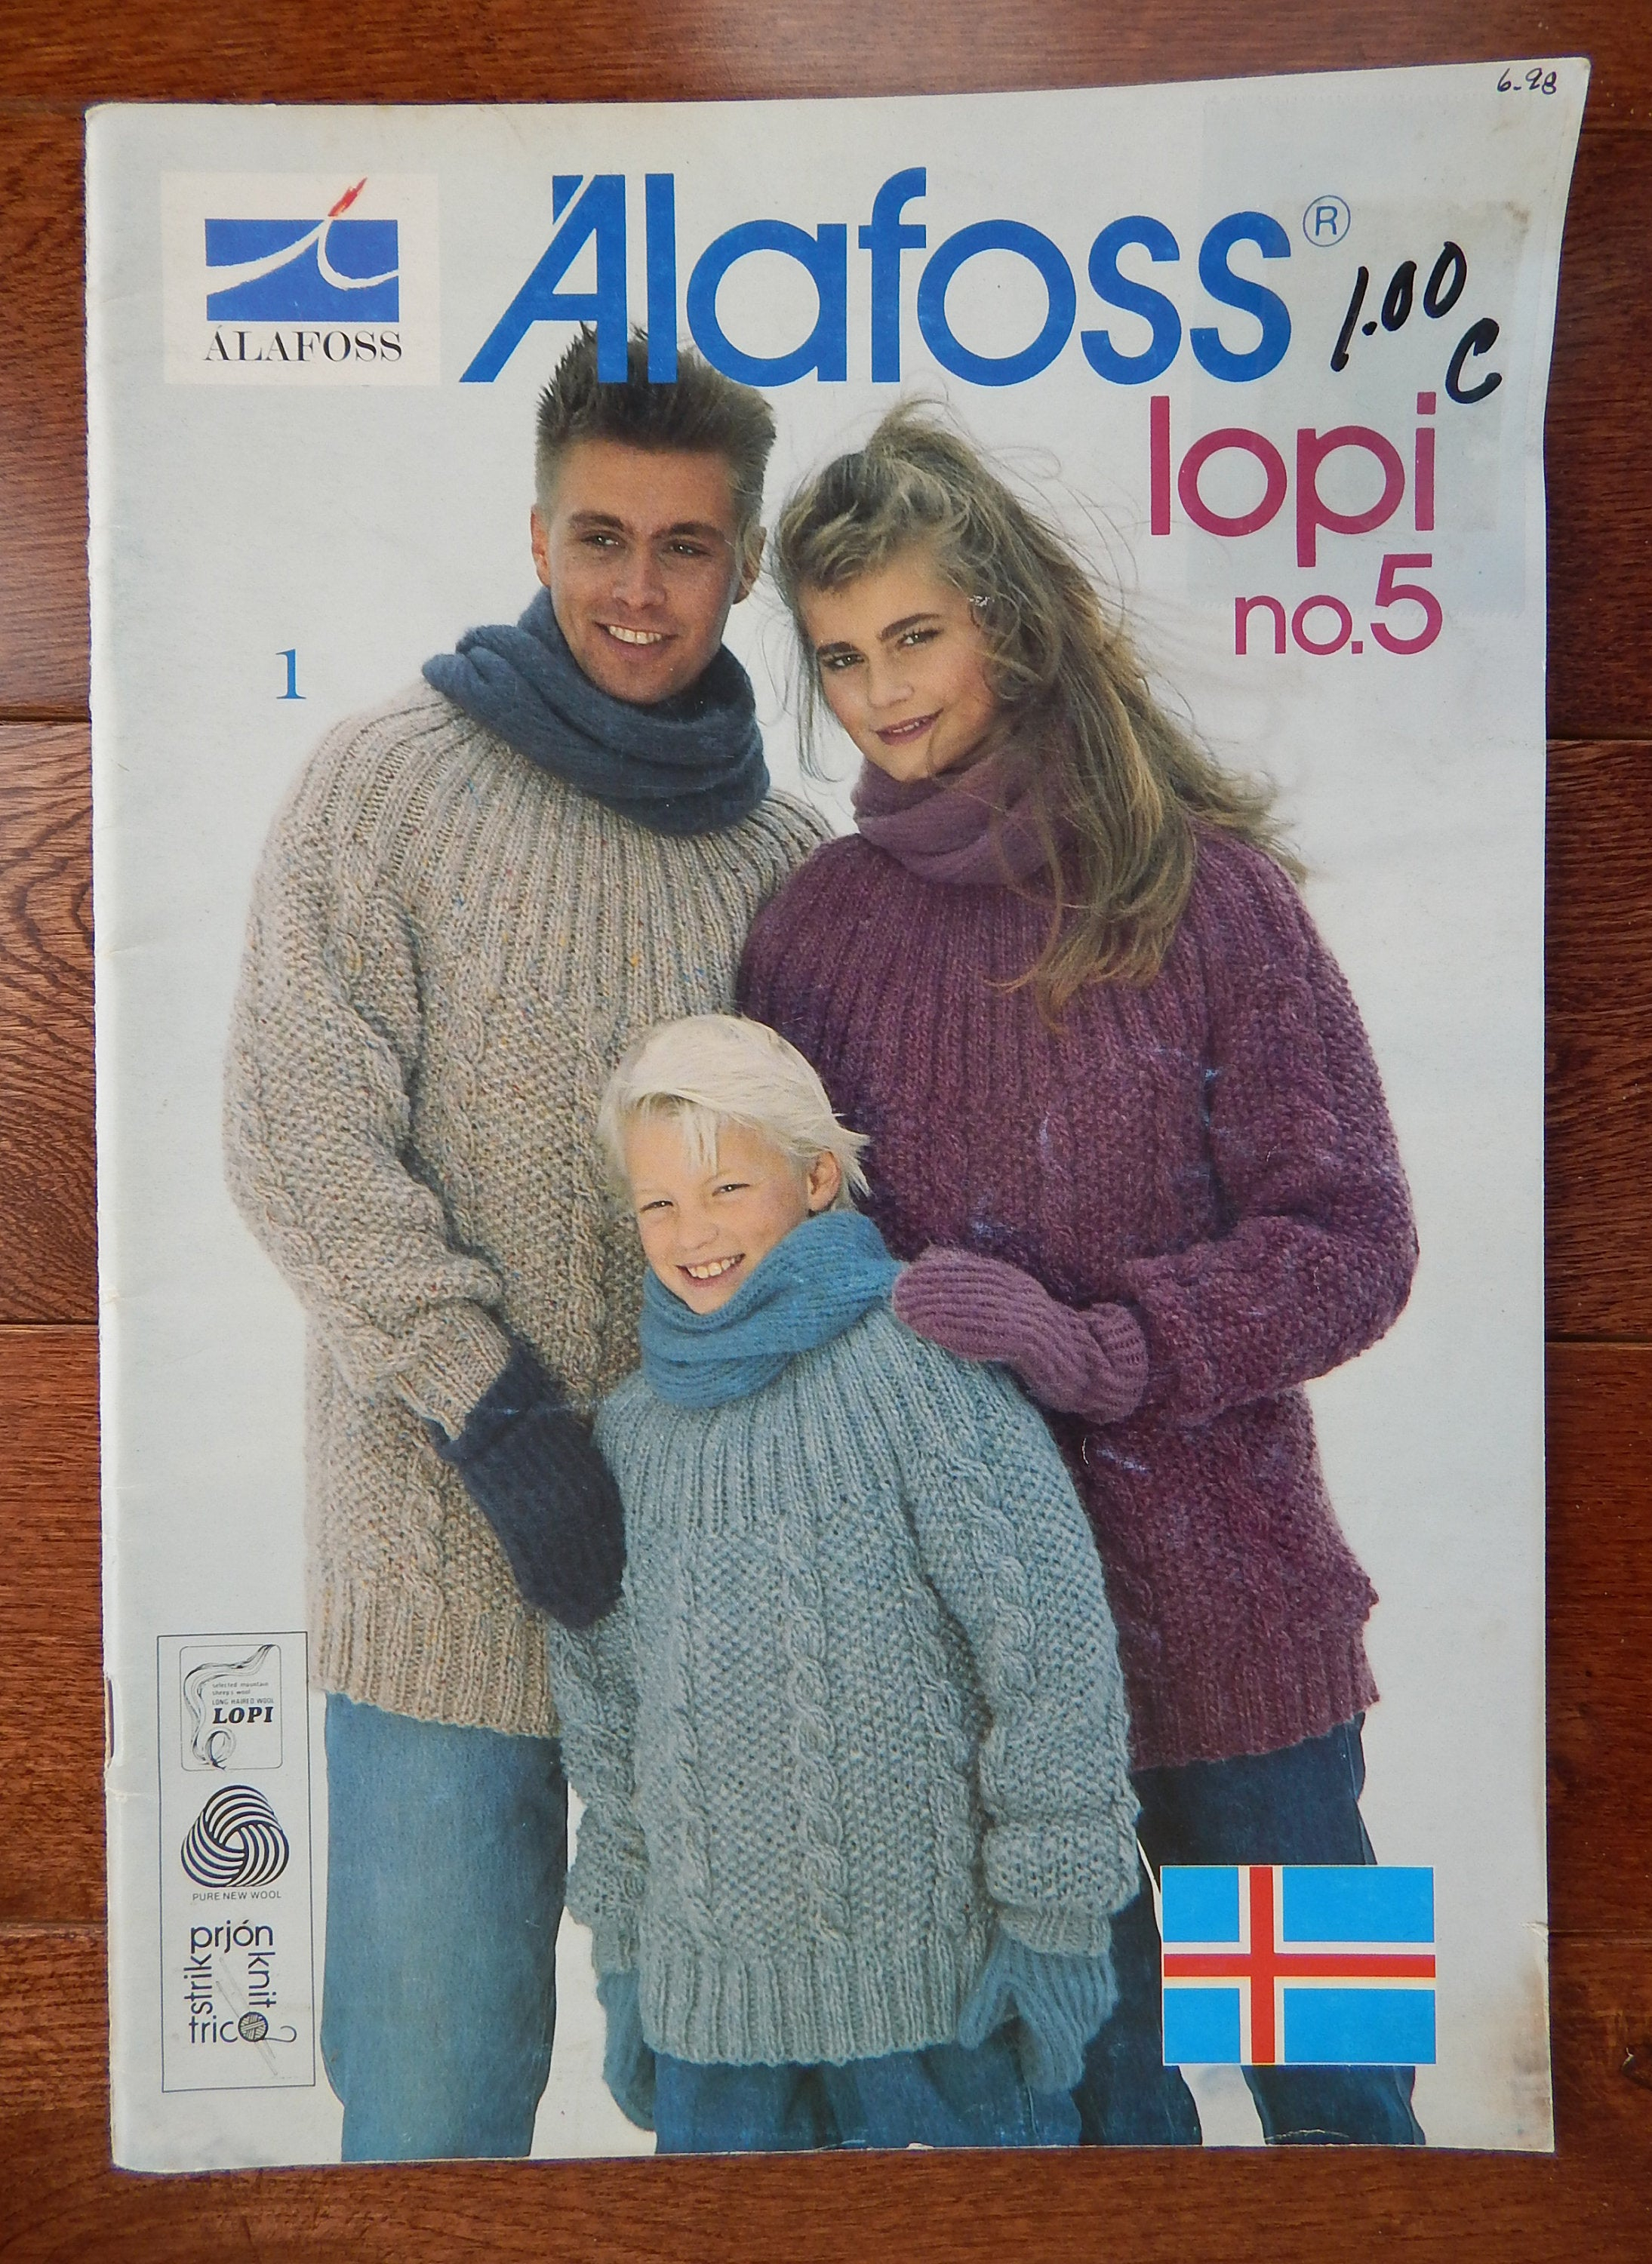 Free Lopi Knitting Patterns Alafoss Lopi No 5 Knitting Patterns Men Women Children Pullover Cardigan Sweater Vest Outerwear Sizes Vary Ski Fair Isles Cable